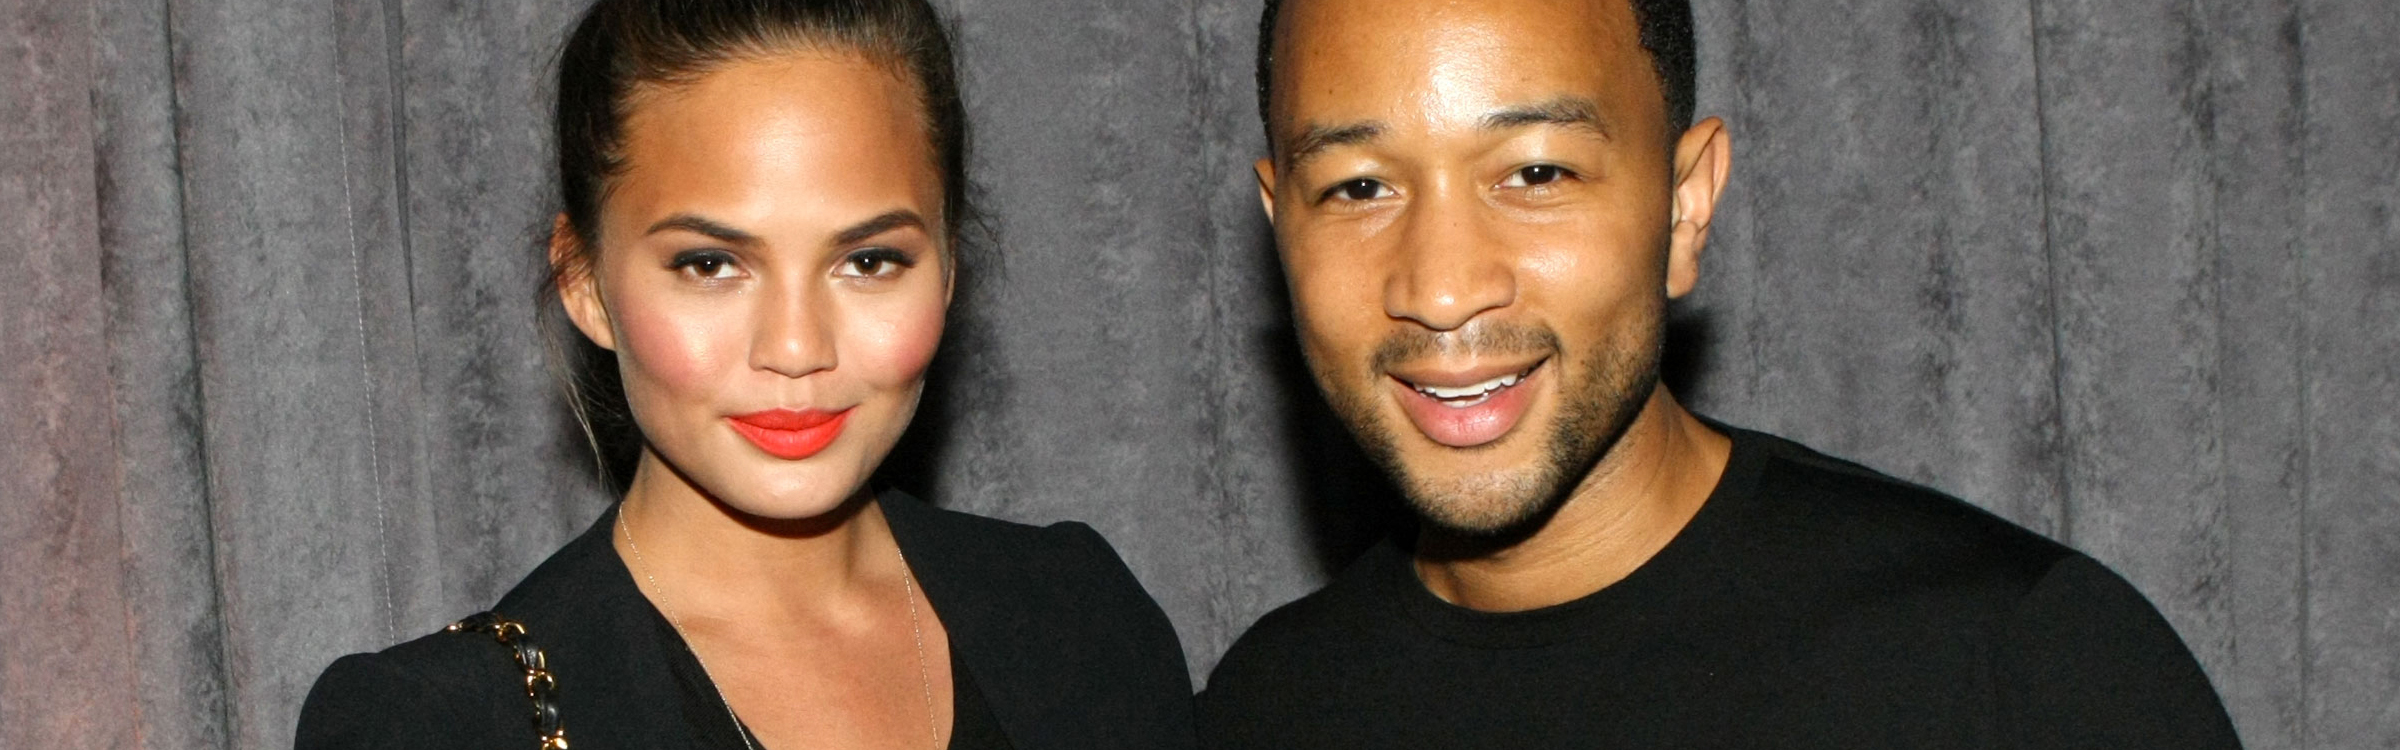 Headerjohn legend chrissy teigen